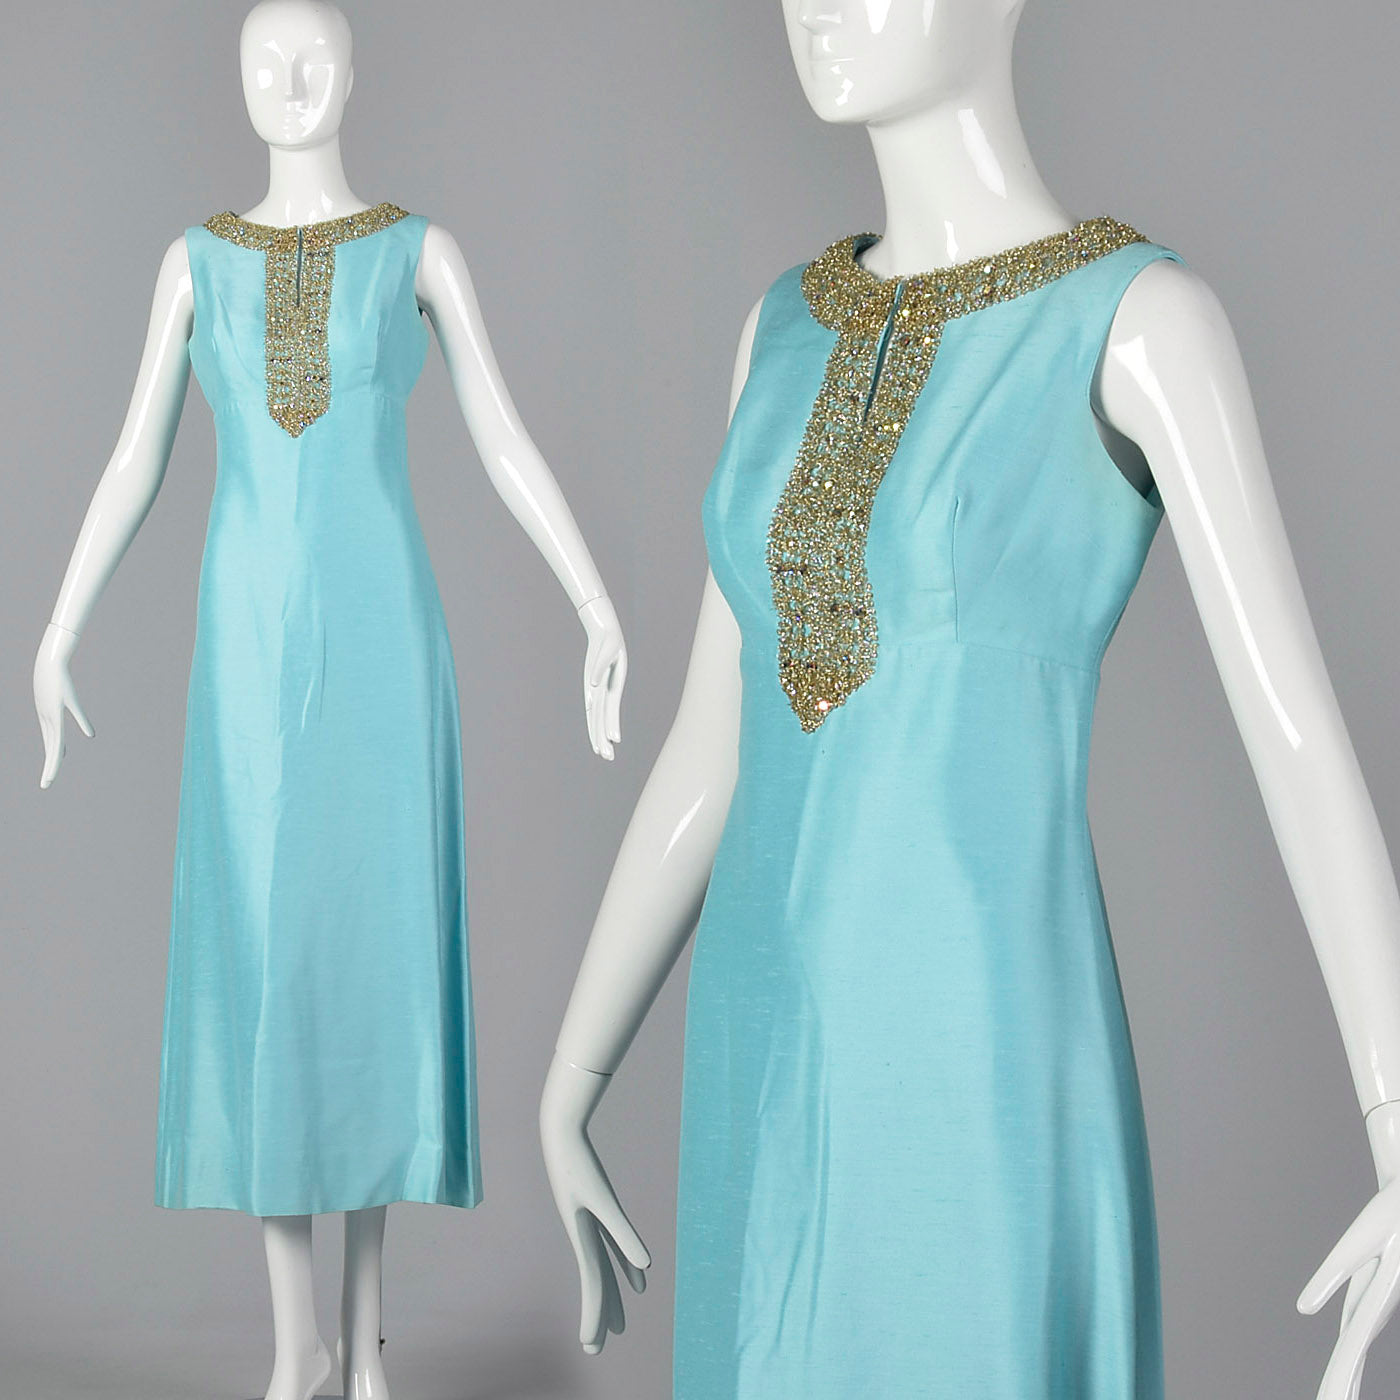 1960s Blue Maxi Dress with Keyhole Bust